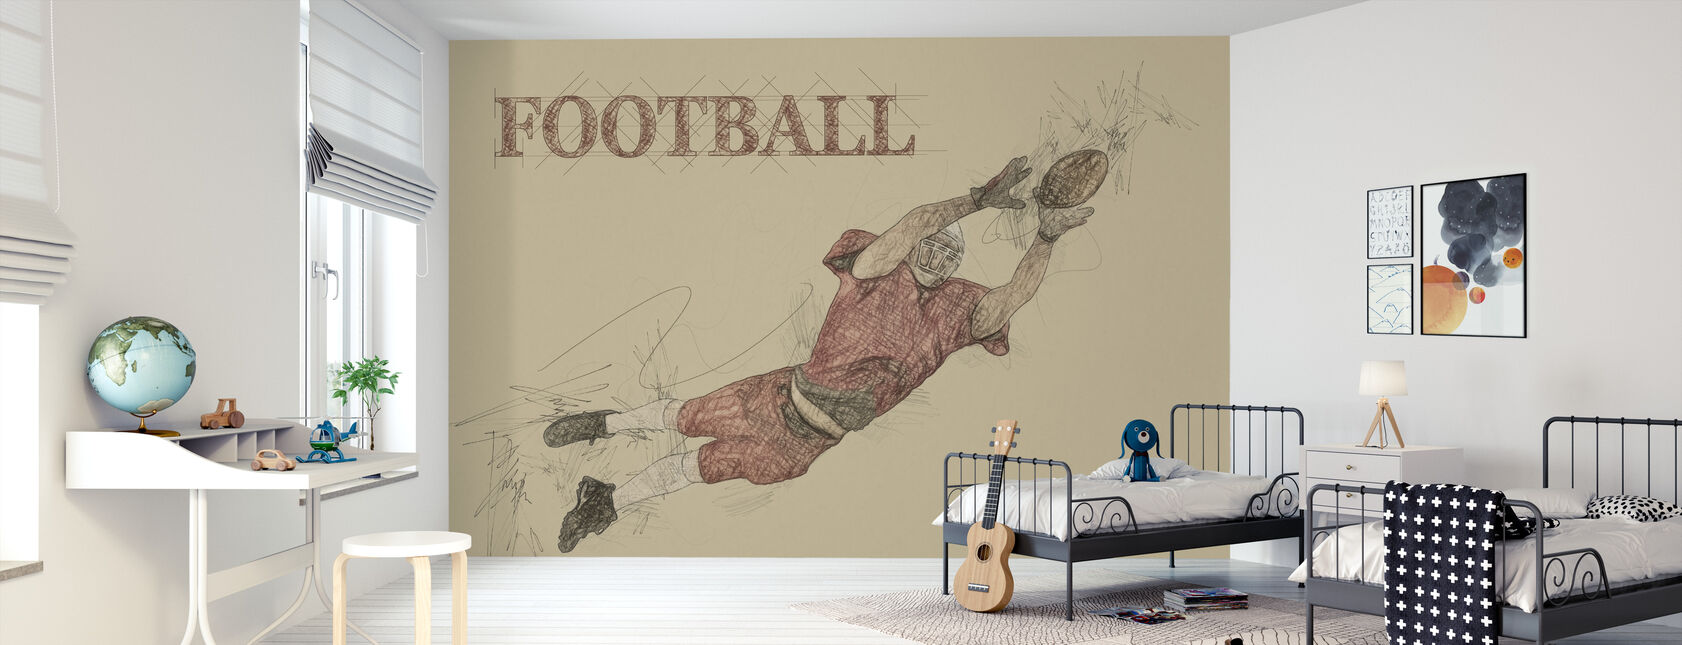 Football - Wallpaper - Kids Room